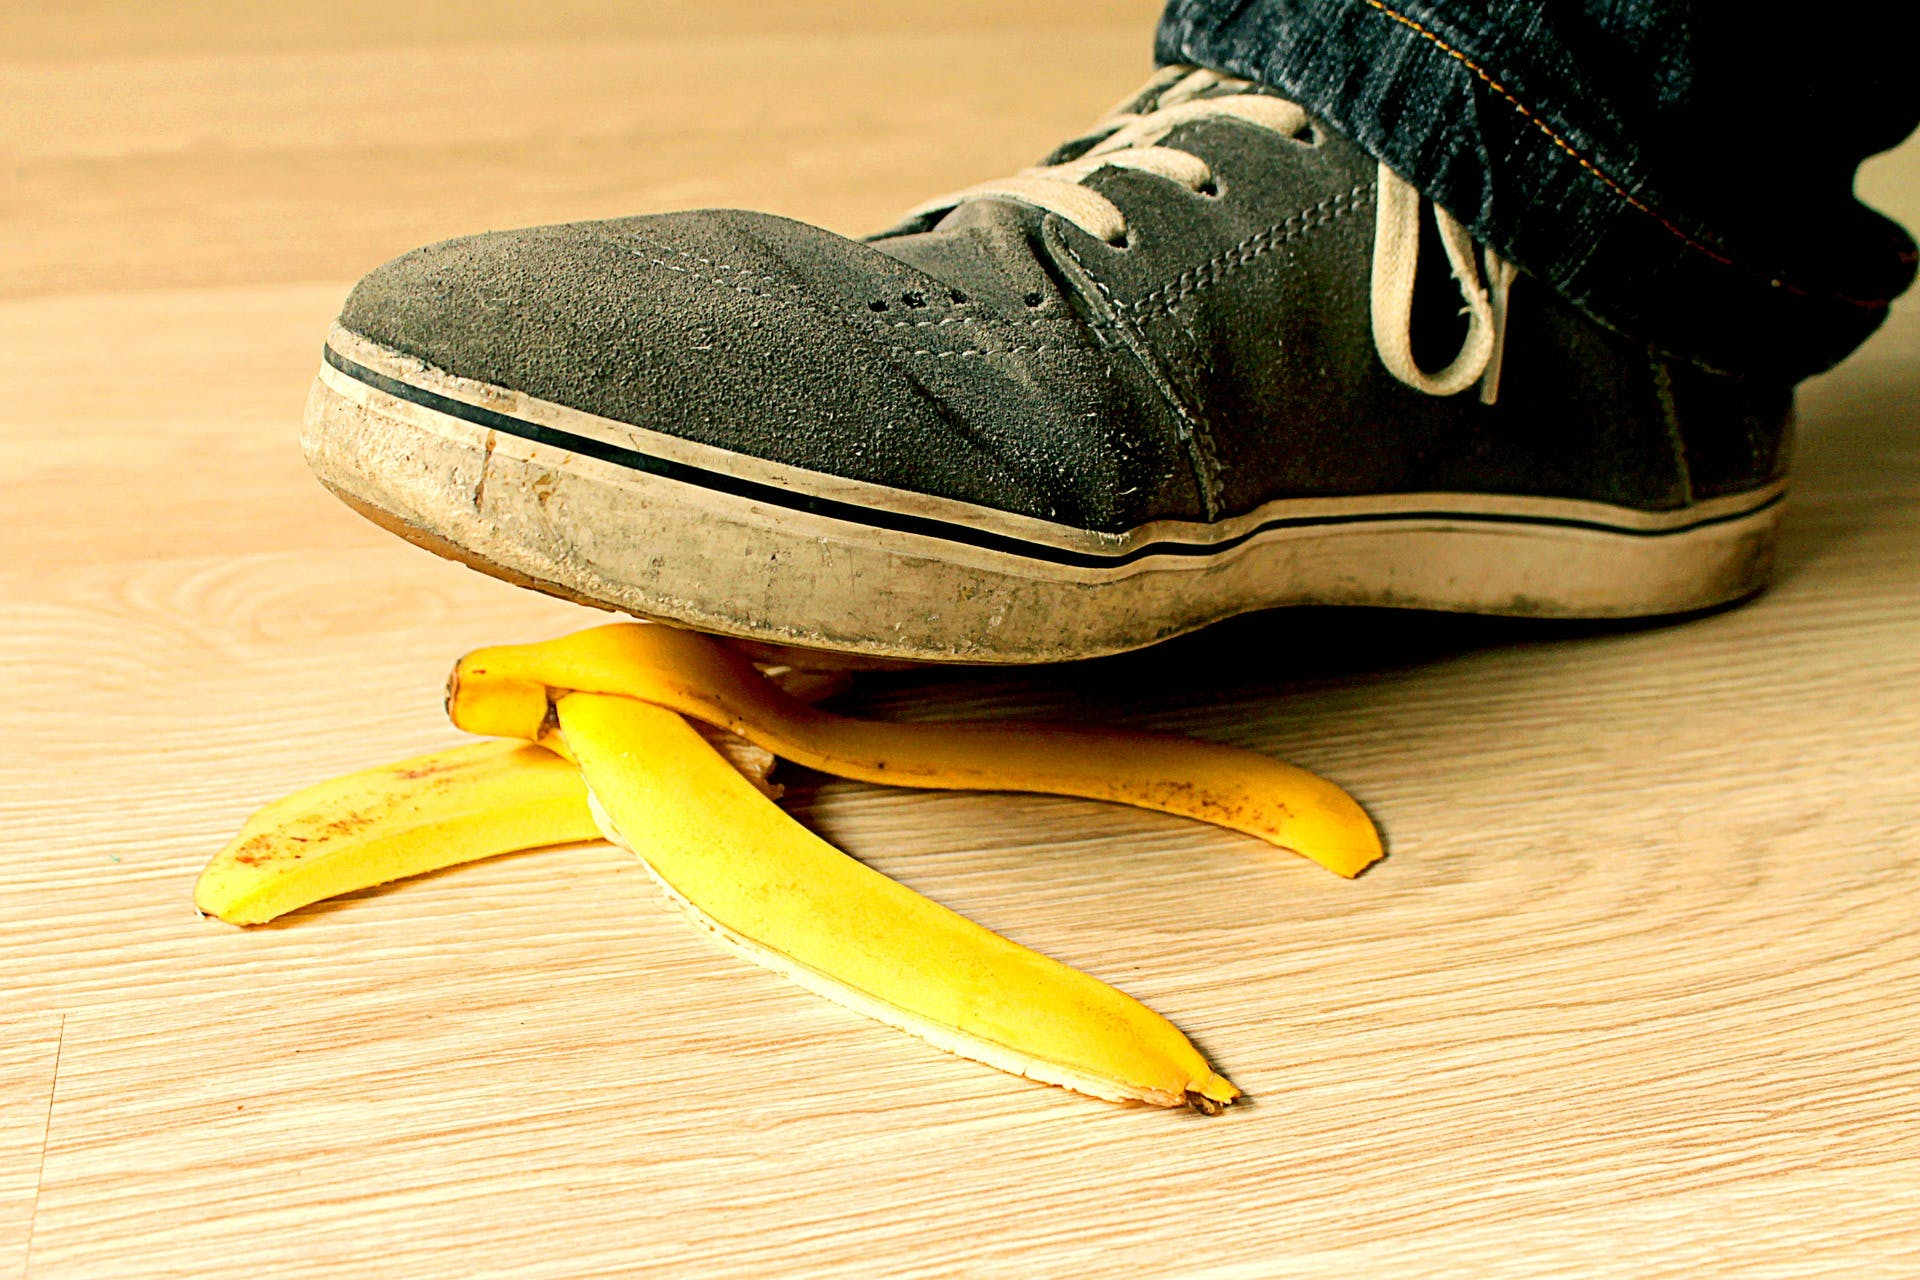 black shoe stepping on banana peel